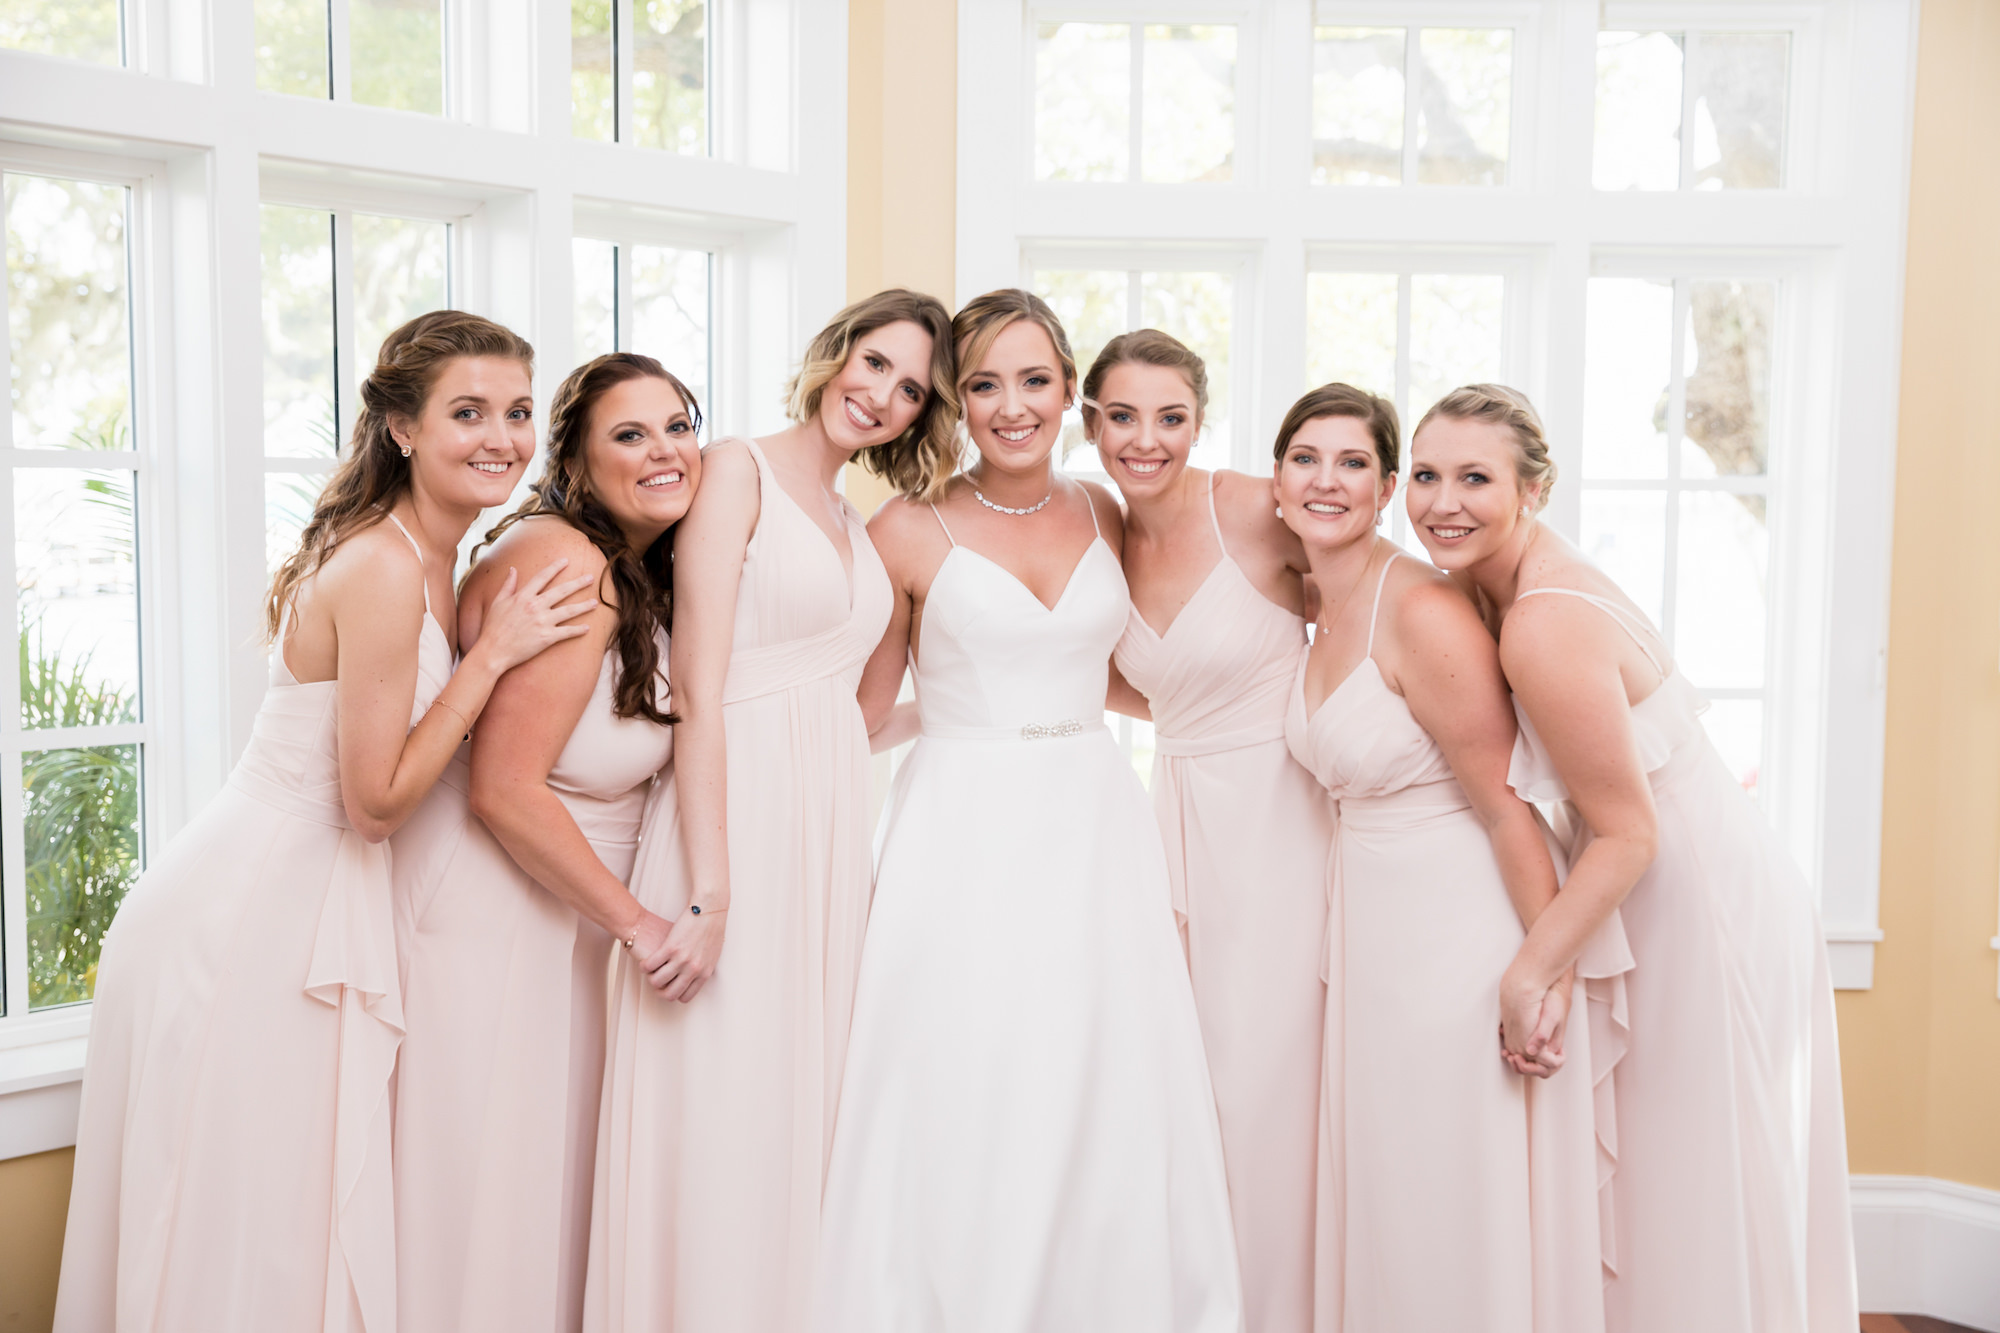 Tampa Bay Bride Wearing V Neck A-Line with Straps and Rhinestone Belt Justin Alexander Wedding Dress, Bridesmaids in Blush Pink Mix and Match Dresses